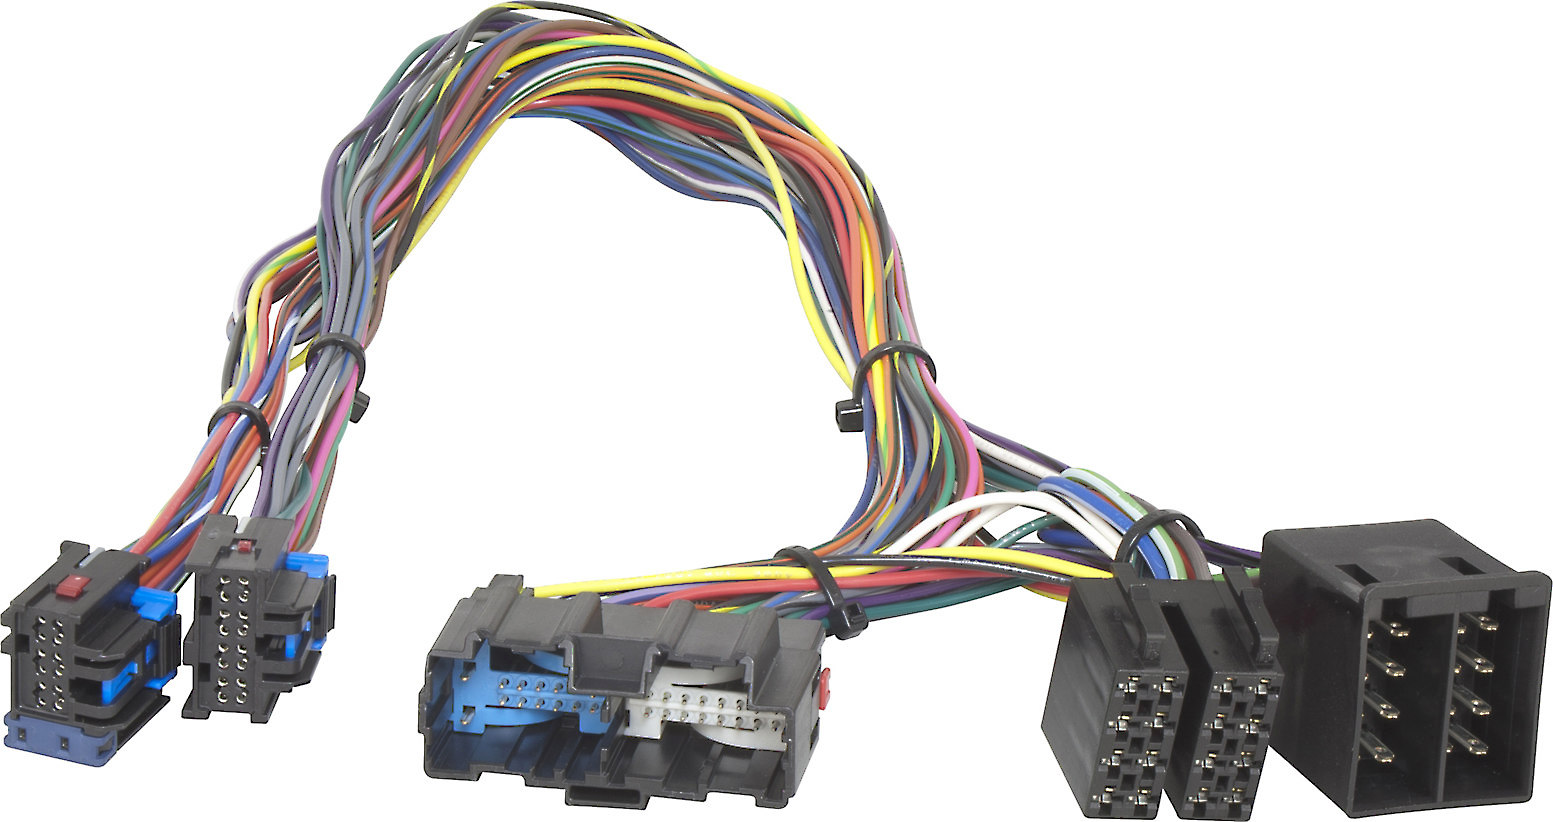 hight resolution of hyundai bluetooth wiring harness connects parrot bluetooth cell phone kits to the factory stereo in select 2007 08 hyundai santa fe vehicles at crutchfield